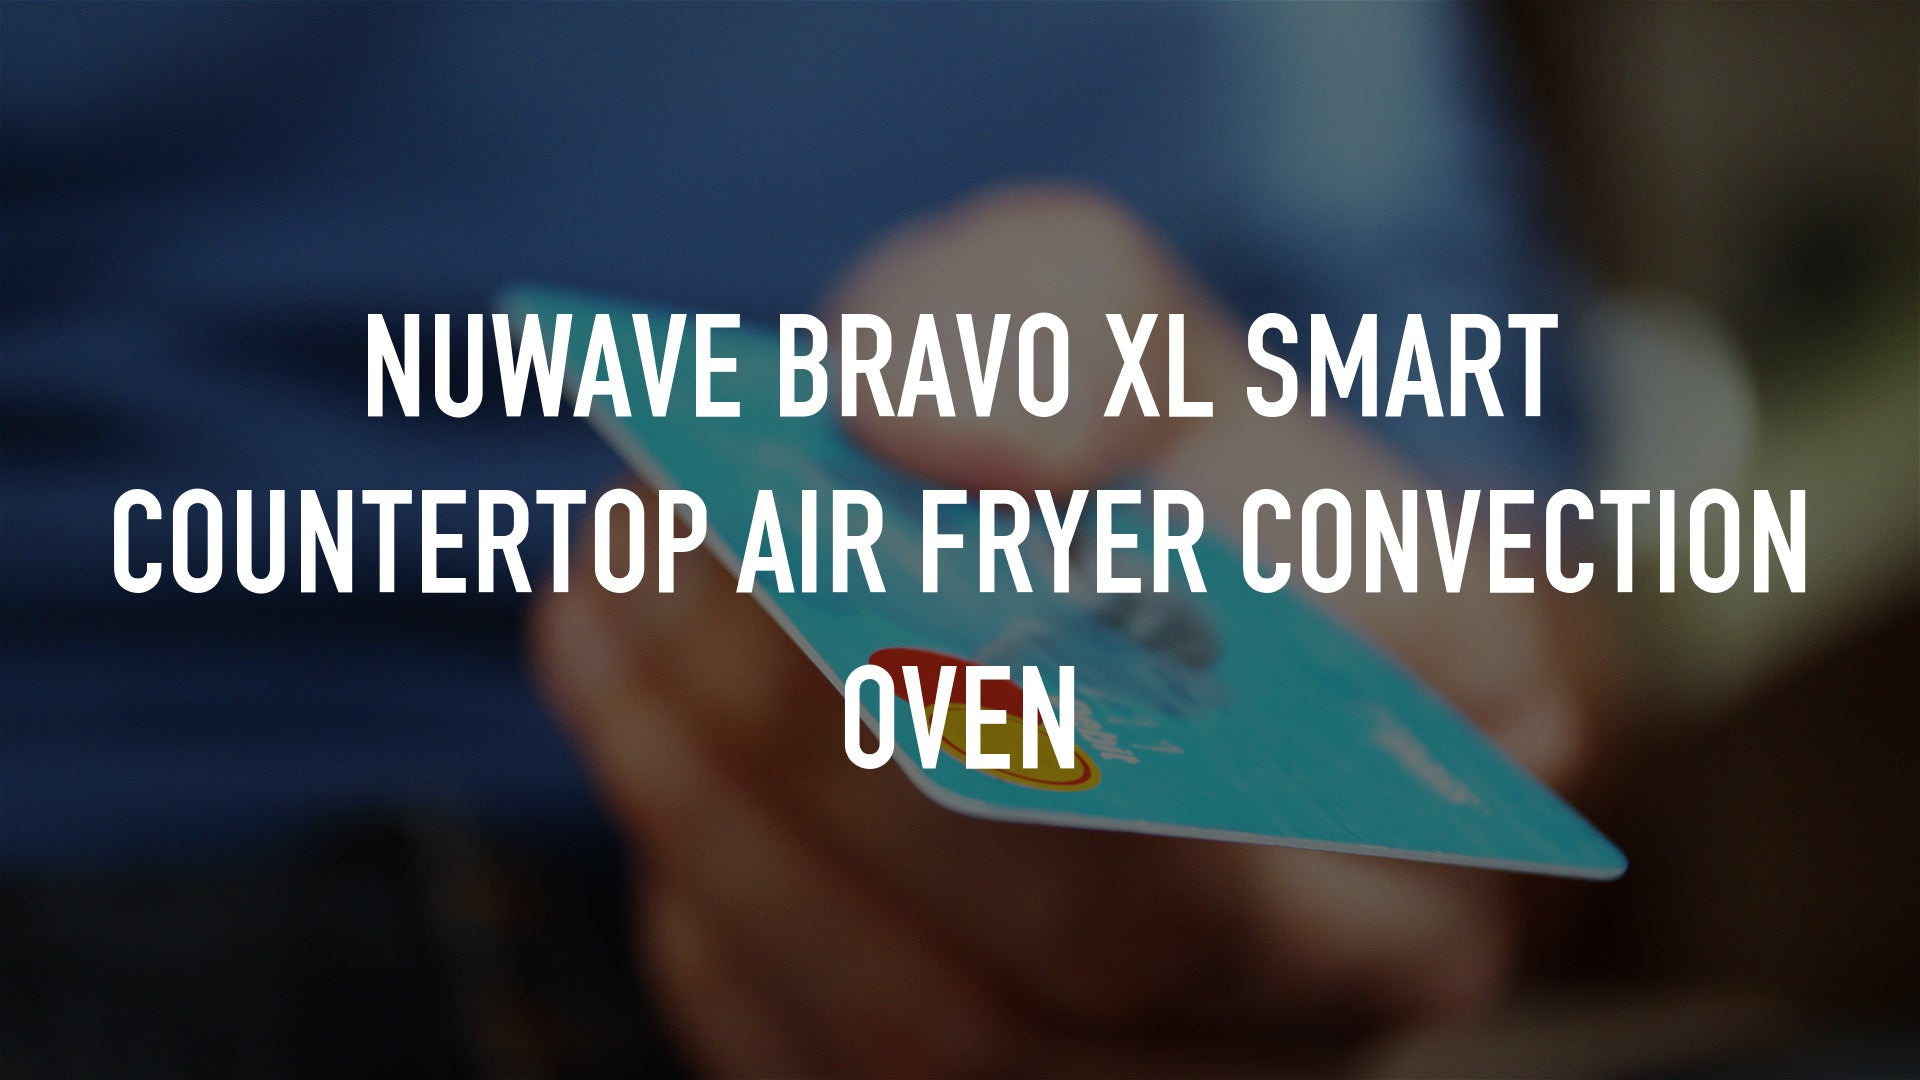 NuWave Bravo XL Smart Countertop Air Fryer Convection Oven